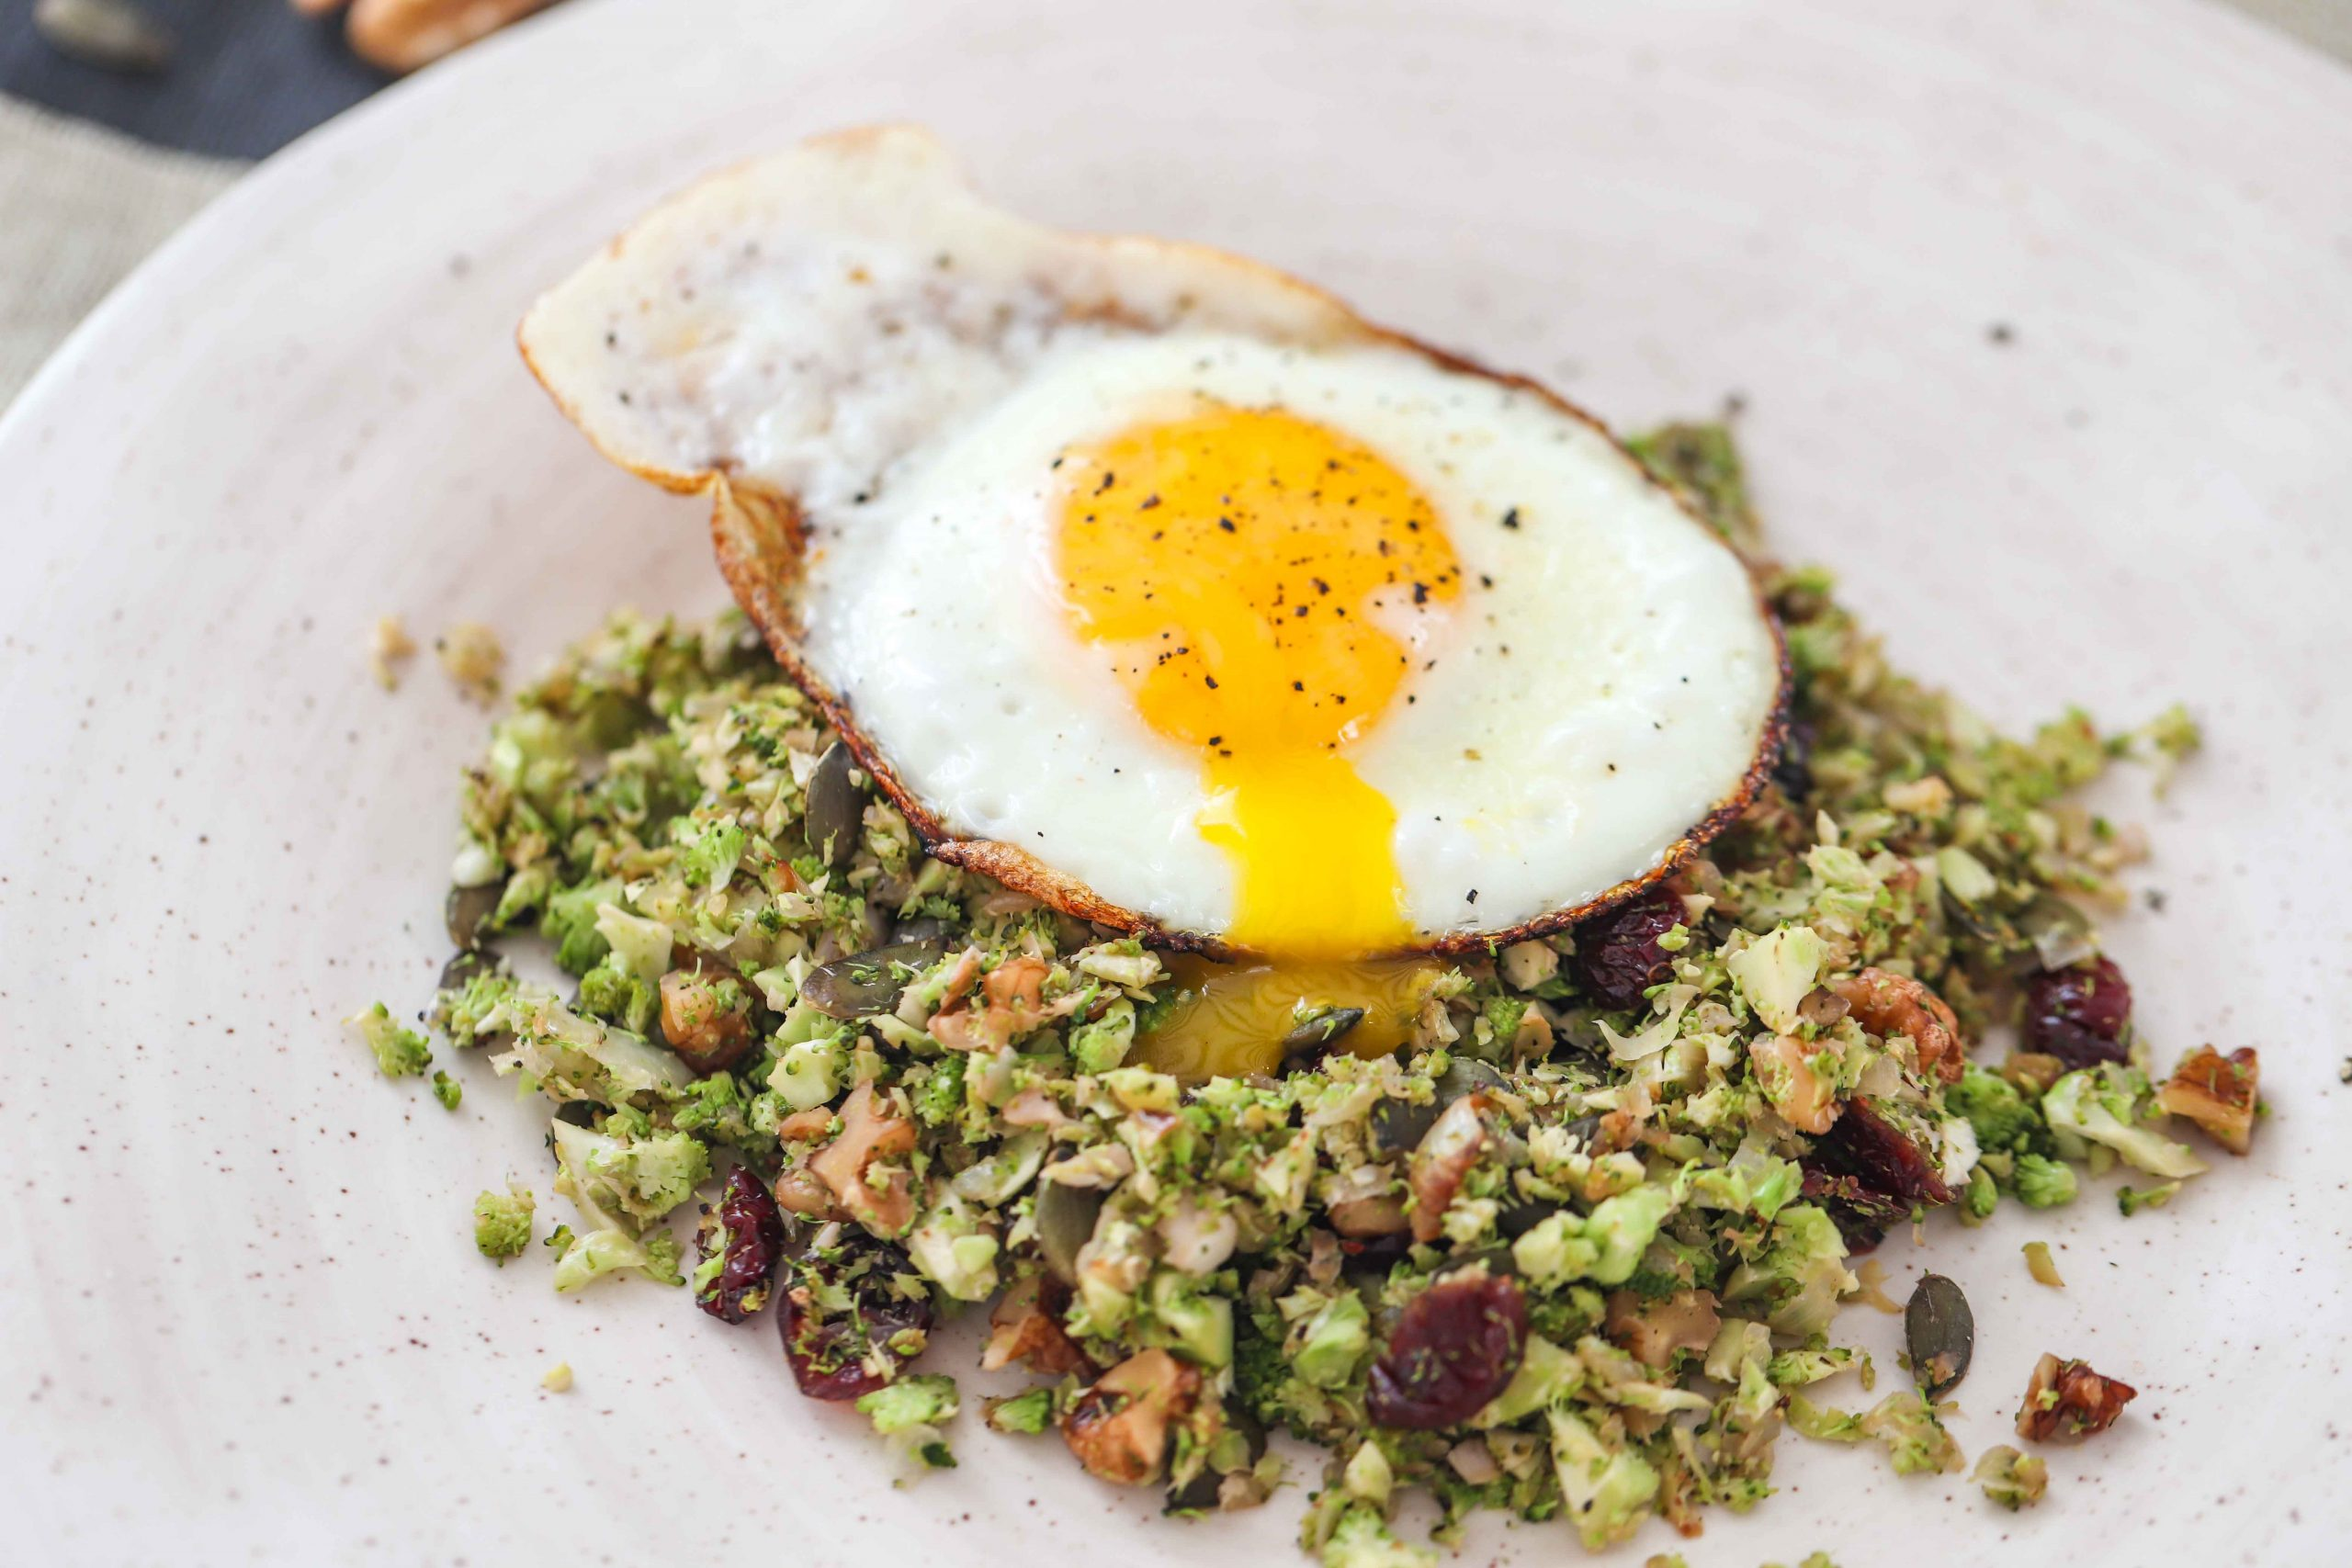 Superfood Breakfast With Fried Egg